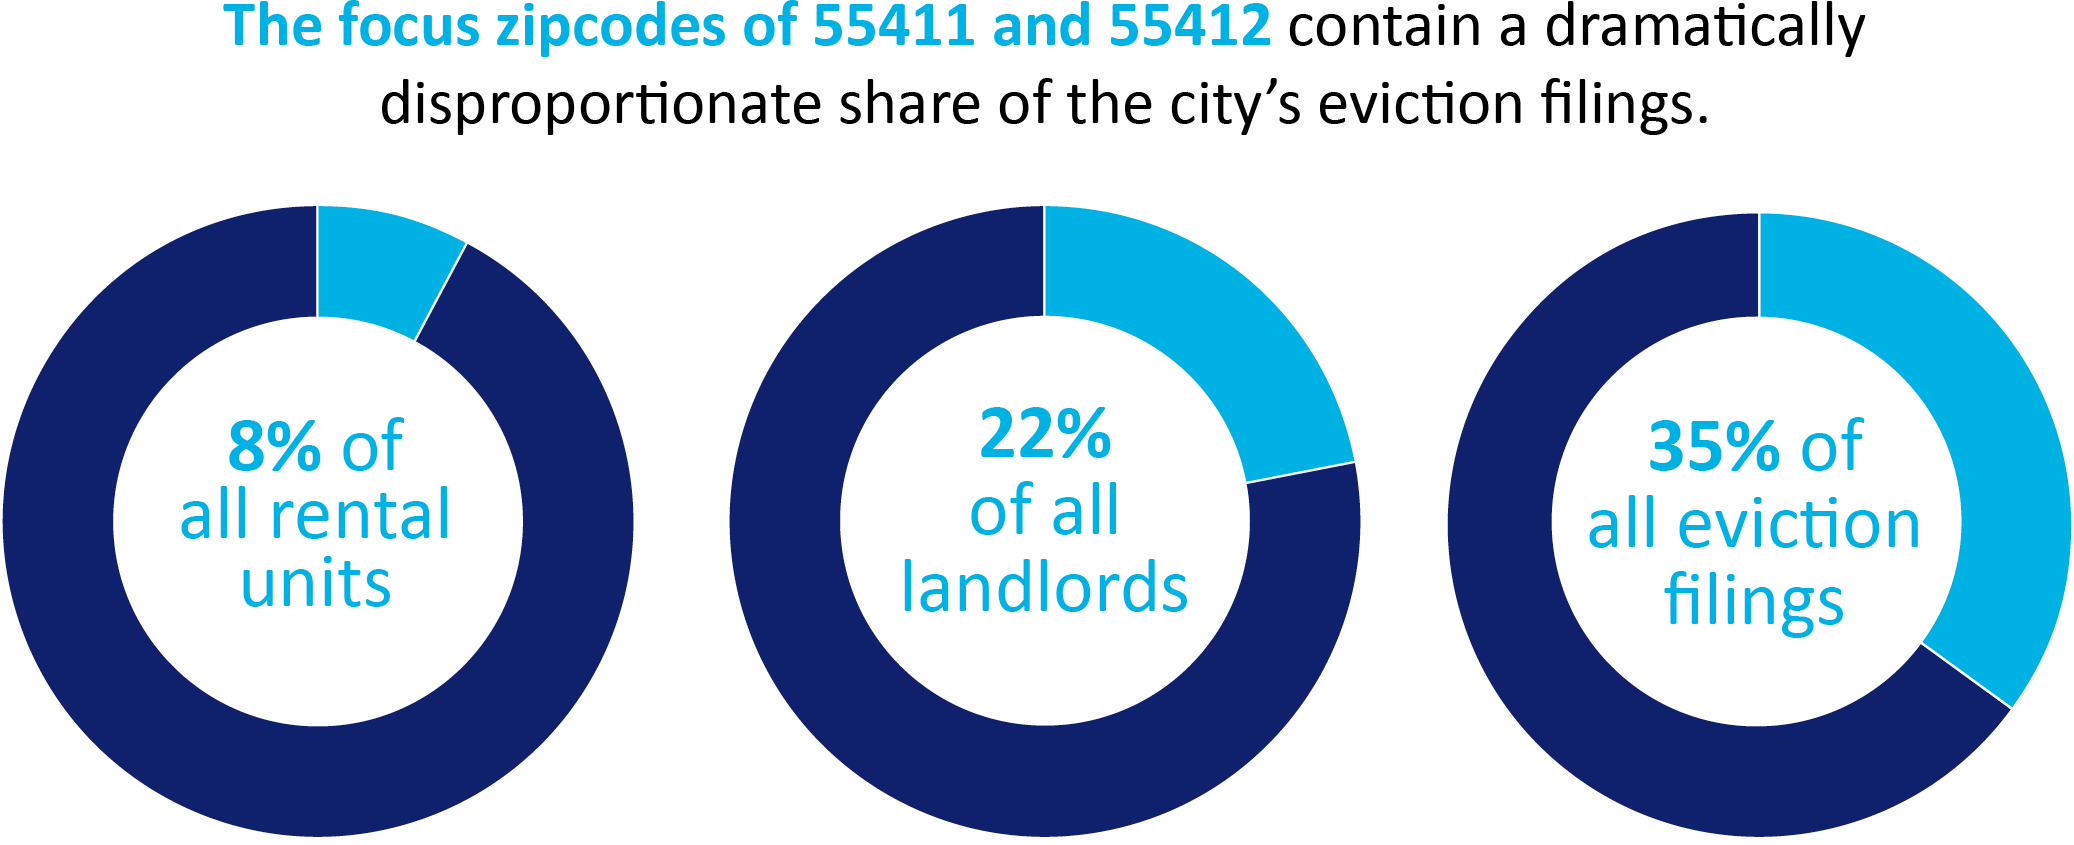 The focus zipcodes of 55411 and 55412 contain a dramatically  disproportionate share of the city's eviction filings.